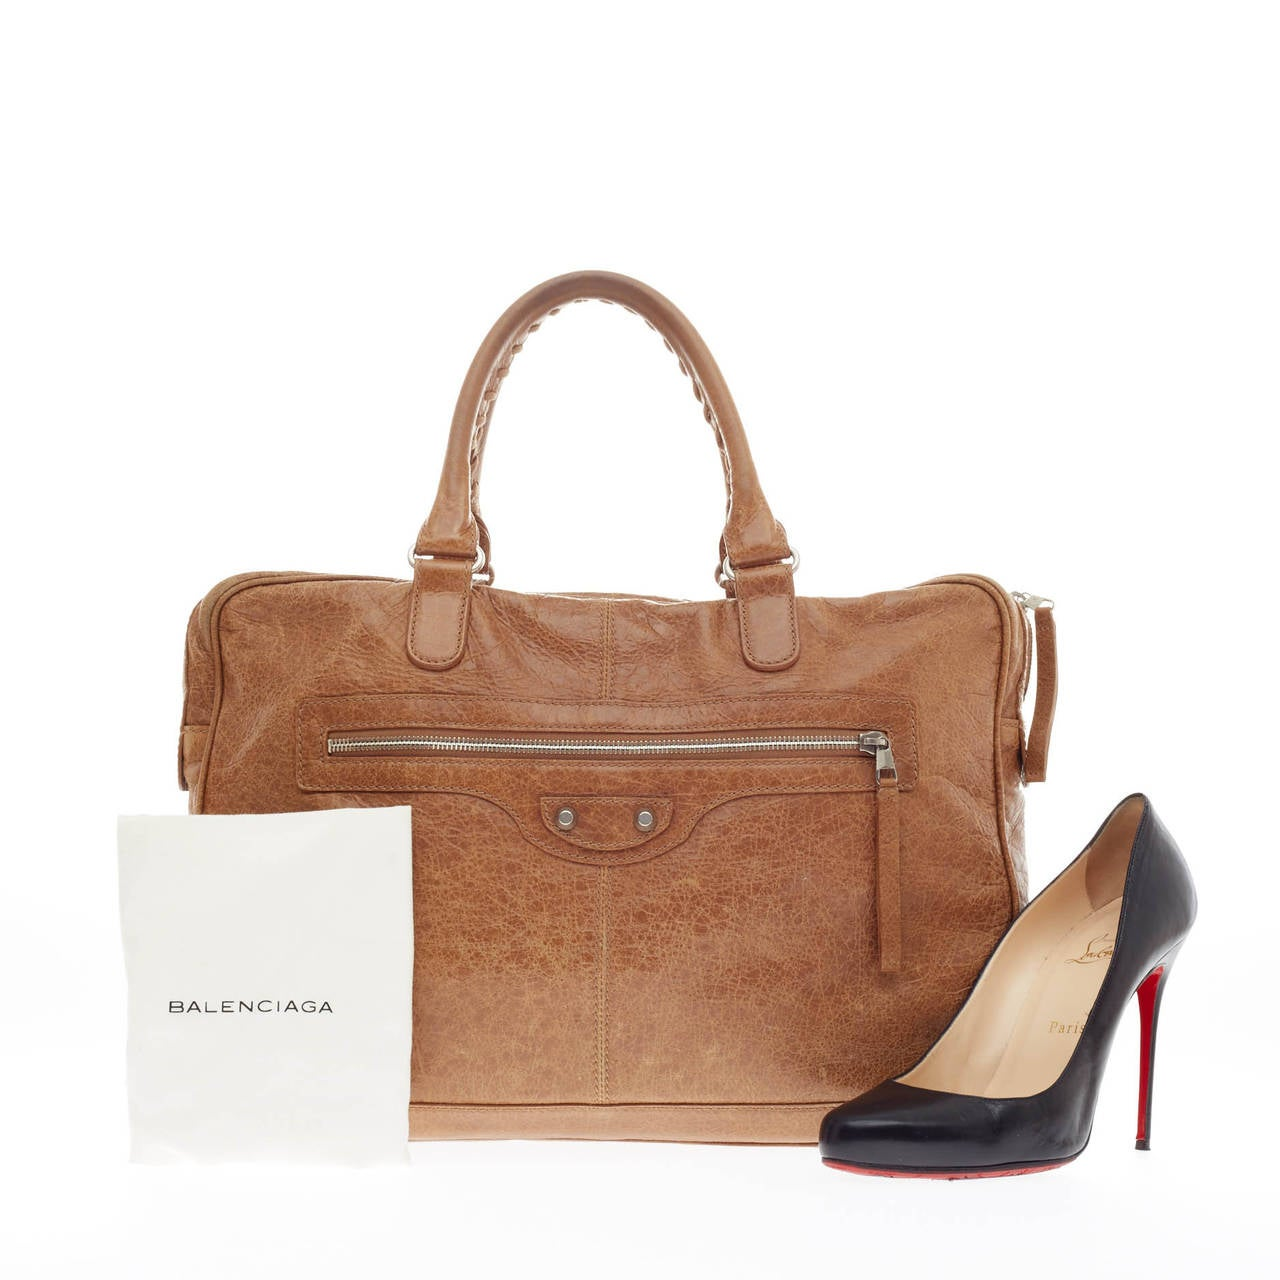 89675980eacb This authentic Balenciaga Mini Folder Leather in golden tan is for the  fashionable working professional.